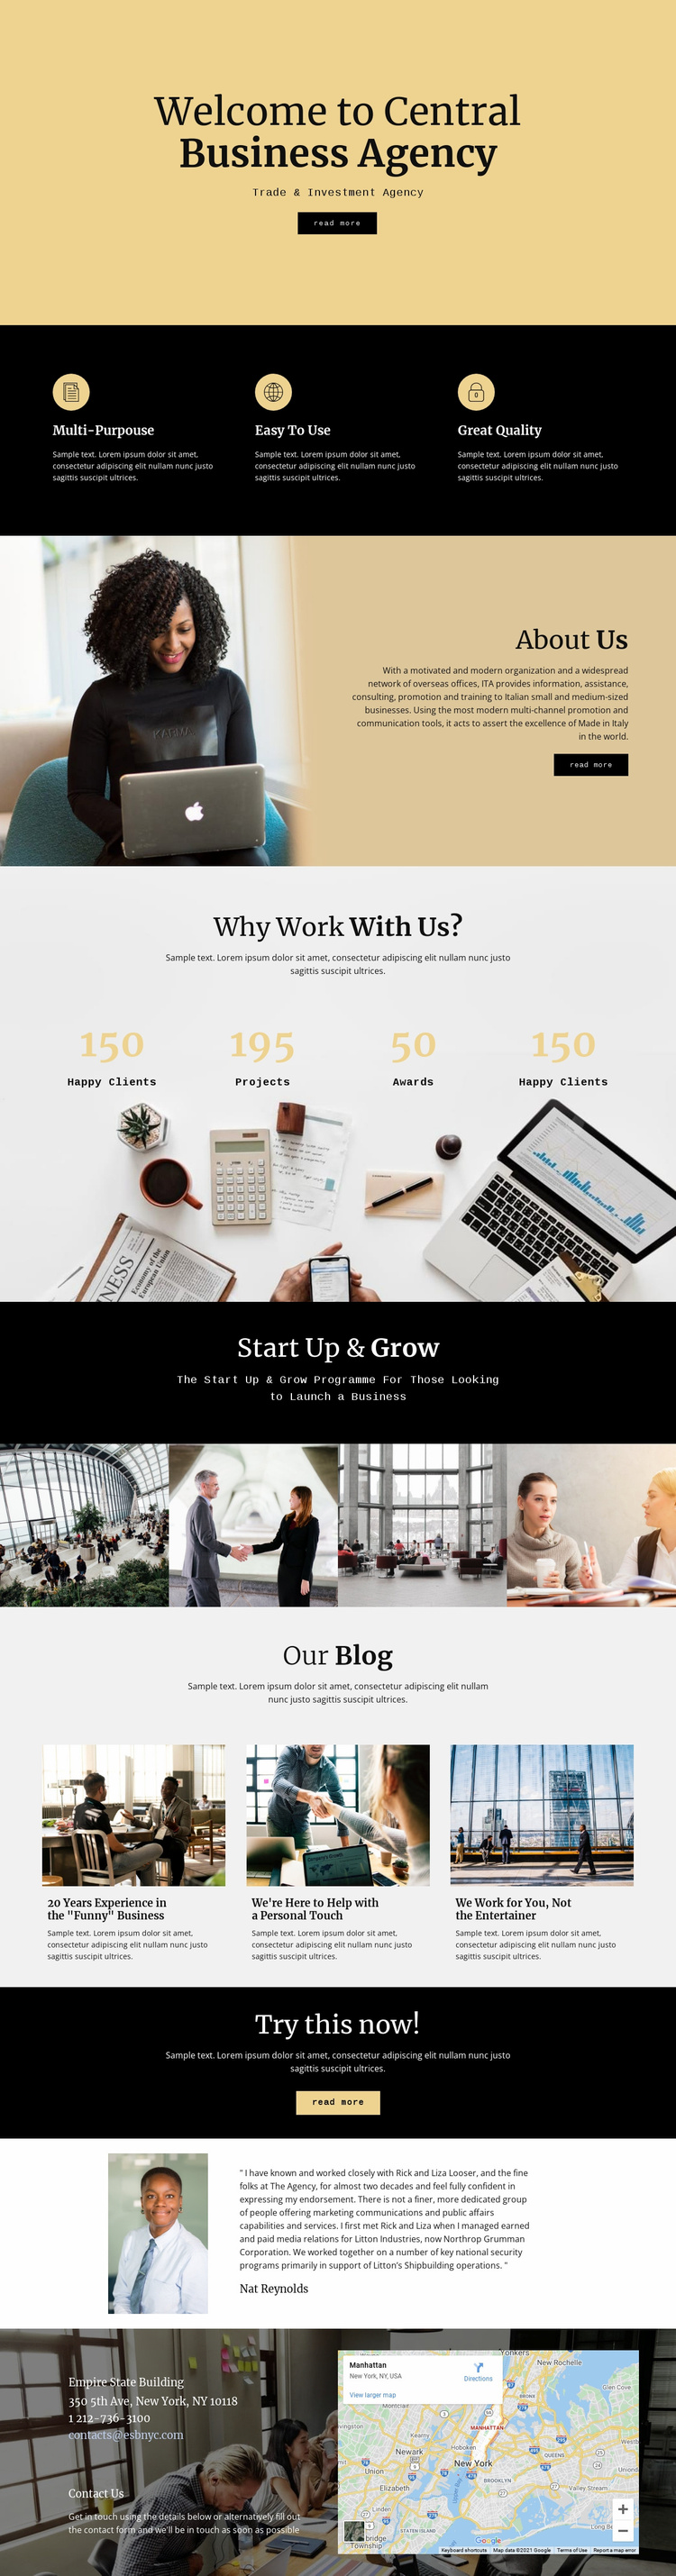 Central digital agency Landing Page